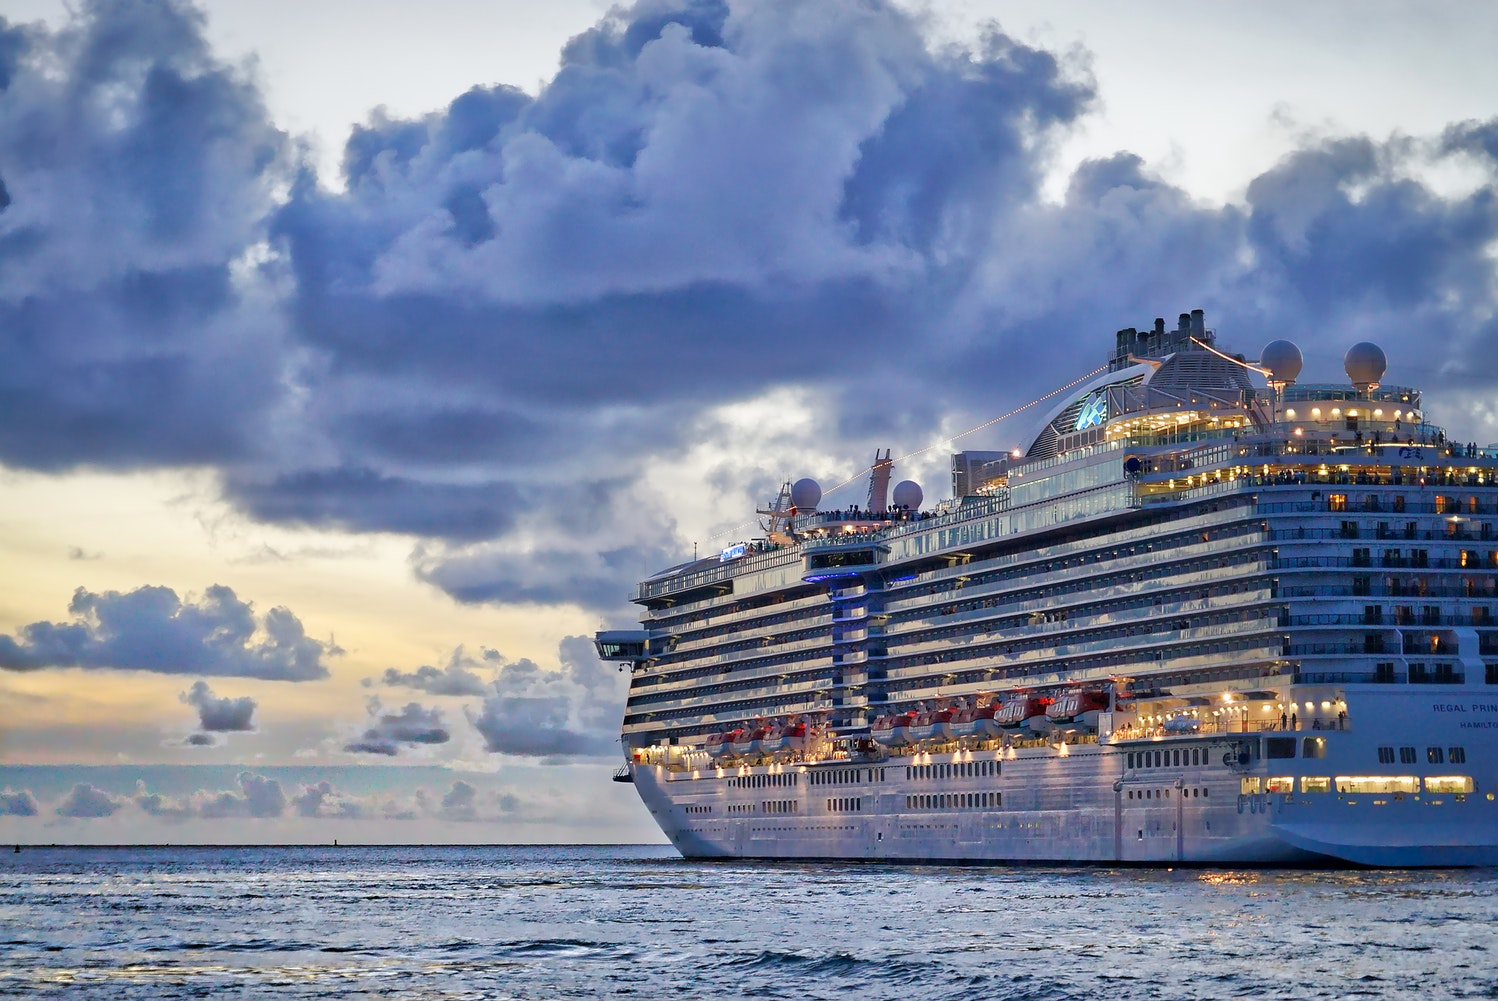 places to go for new year's eve - new year's eve celebration - cruise ship - cruises - peter hansen - us virgin islands - on the sea - out at sea - ocean living - luxury cruise ship - luxury